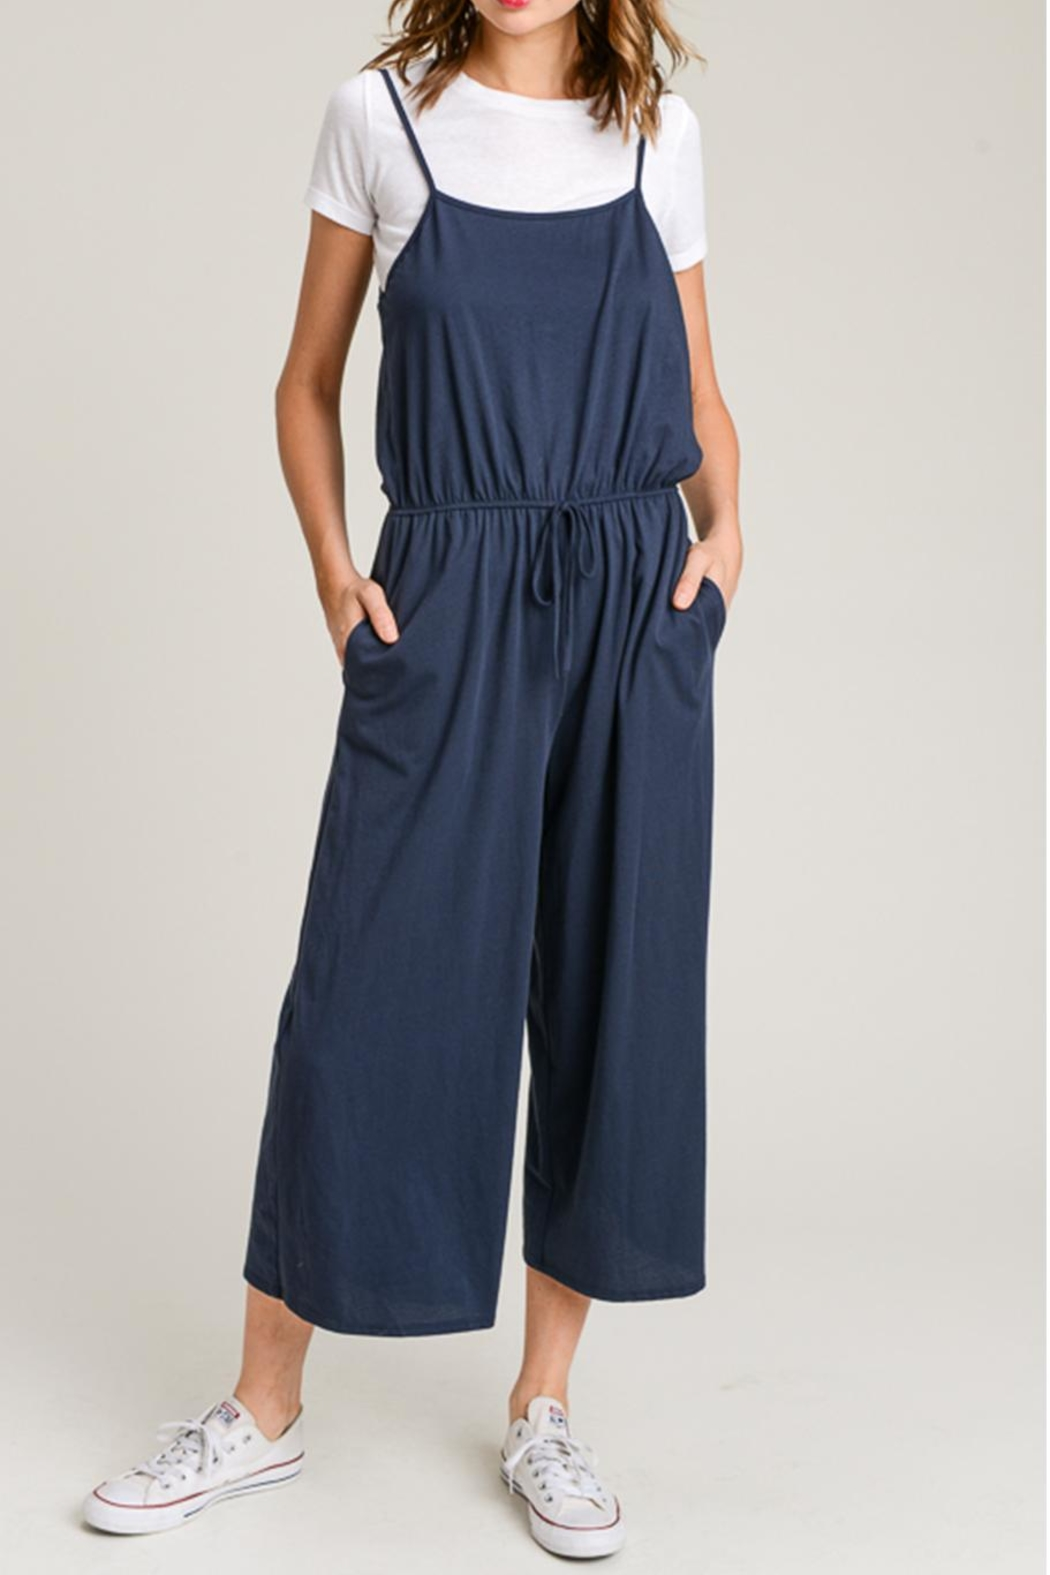 Wasabi + Mint Navy Culotte Jumper from New York by Dor L Dor ... 8d787c990